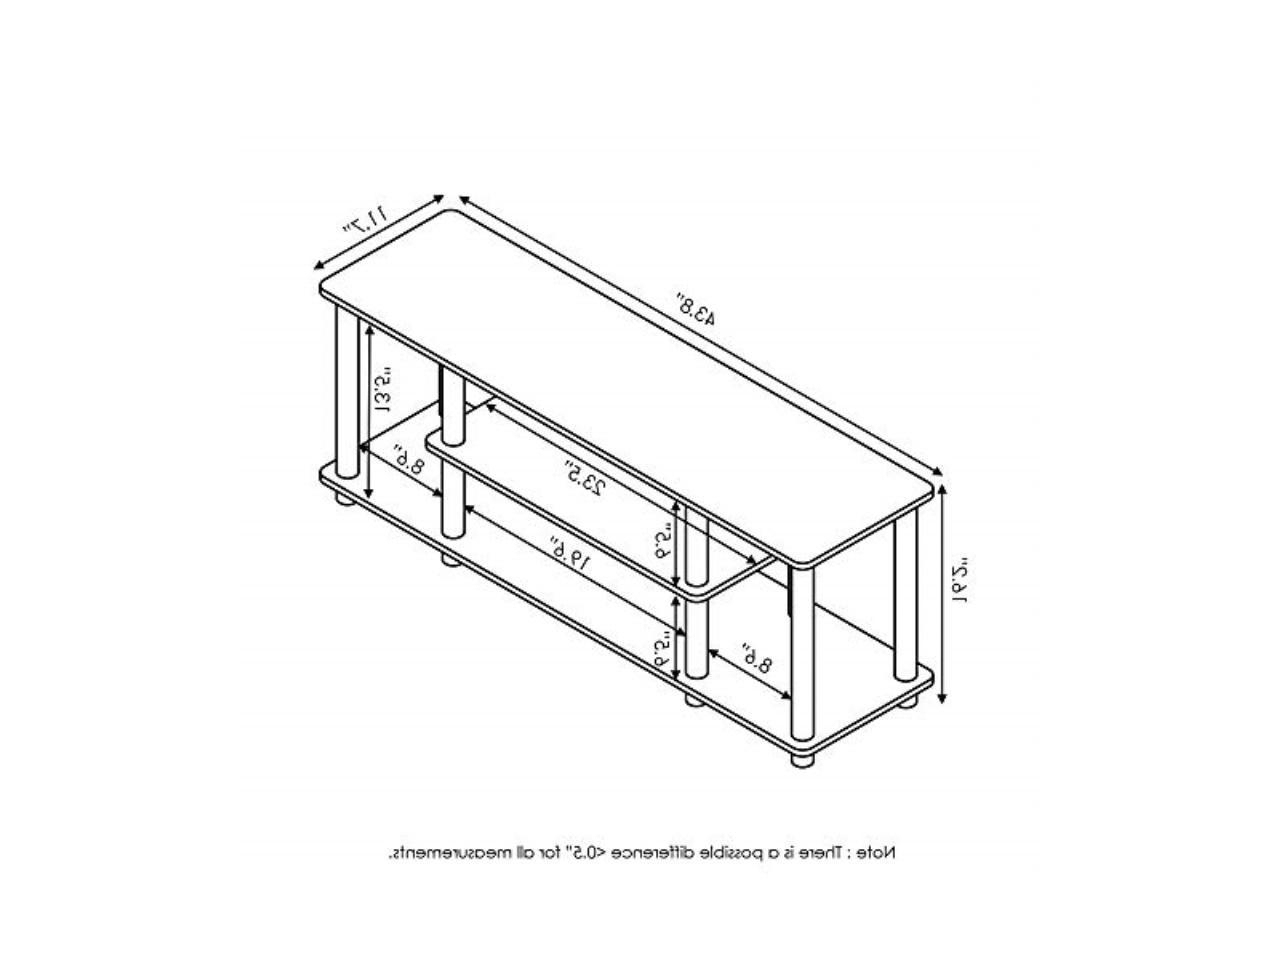 Furinno 12250r1dbr/bk Turn N Tube No Tools 3 Tier Pertaining To Furinno Turn N Tube No Tool 3 Tier Entertainment Tv Stands (View 18 of 20)